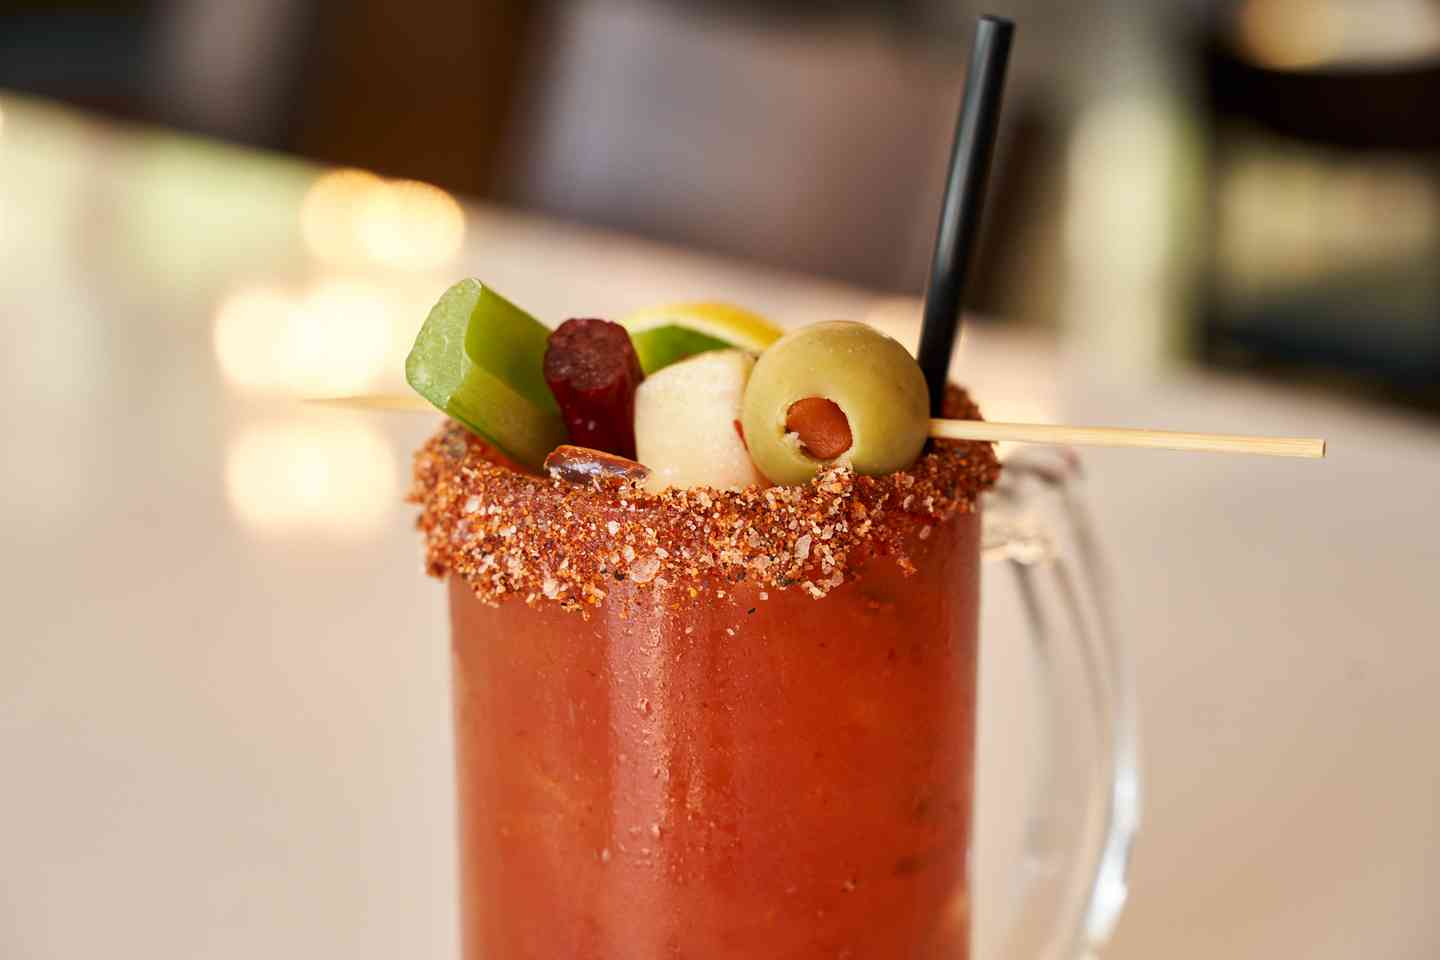 The Boozy Bloody